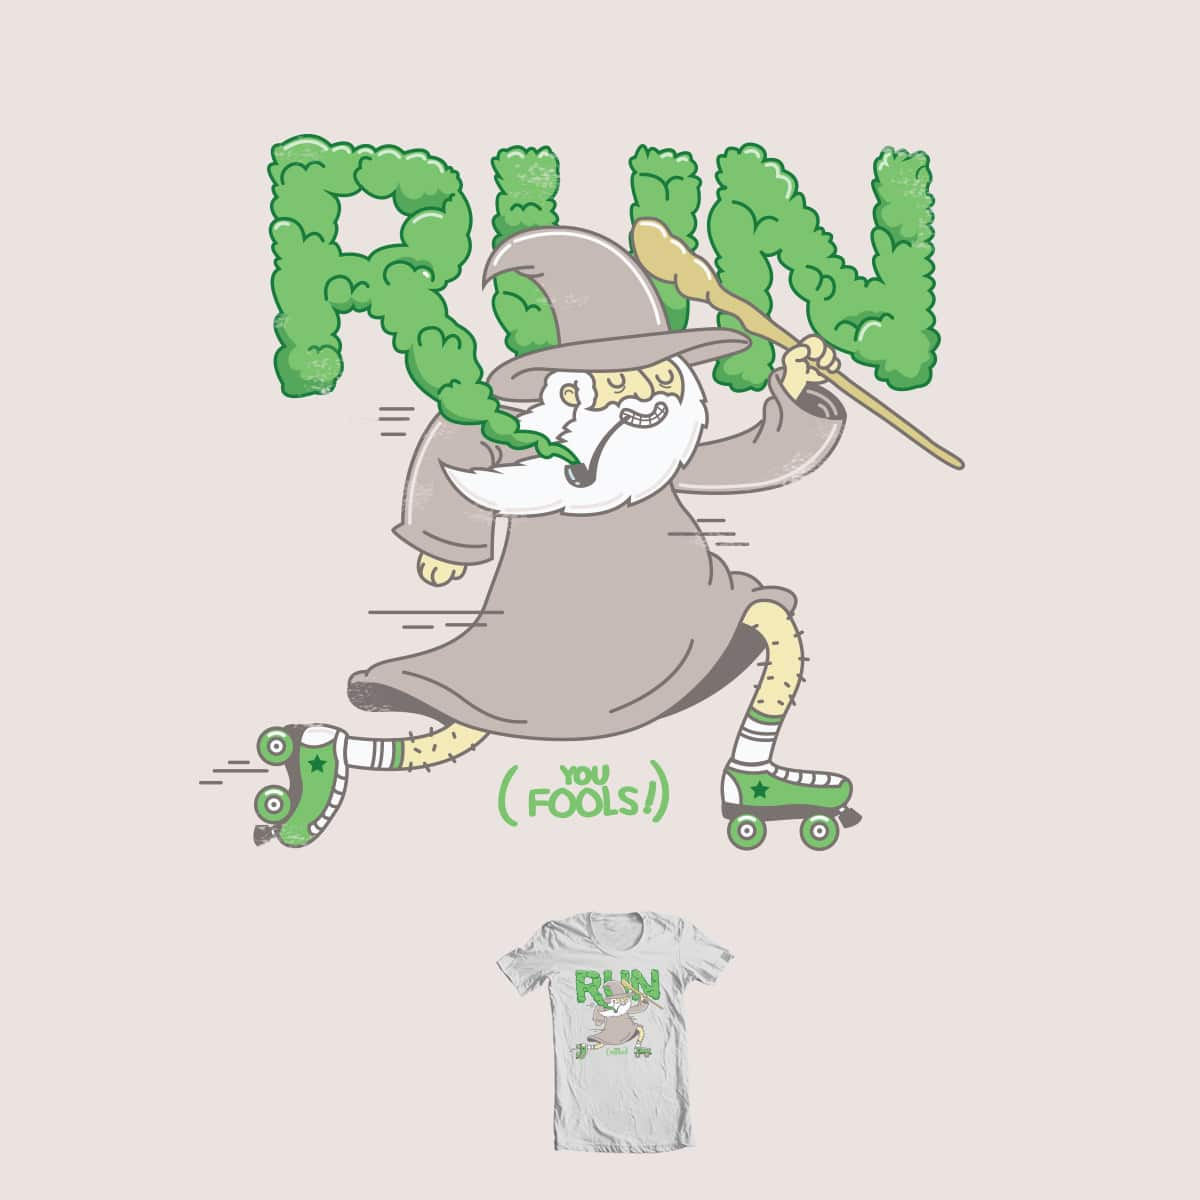 Run You Fools! by ppmid on Threadless